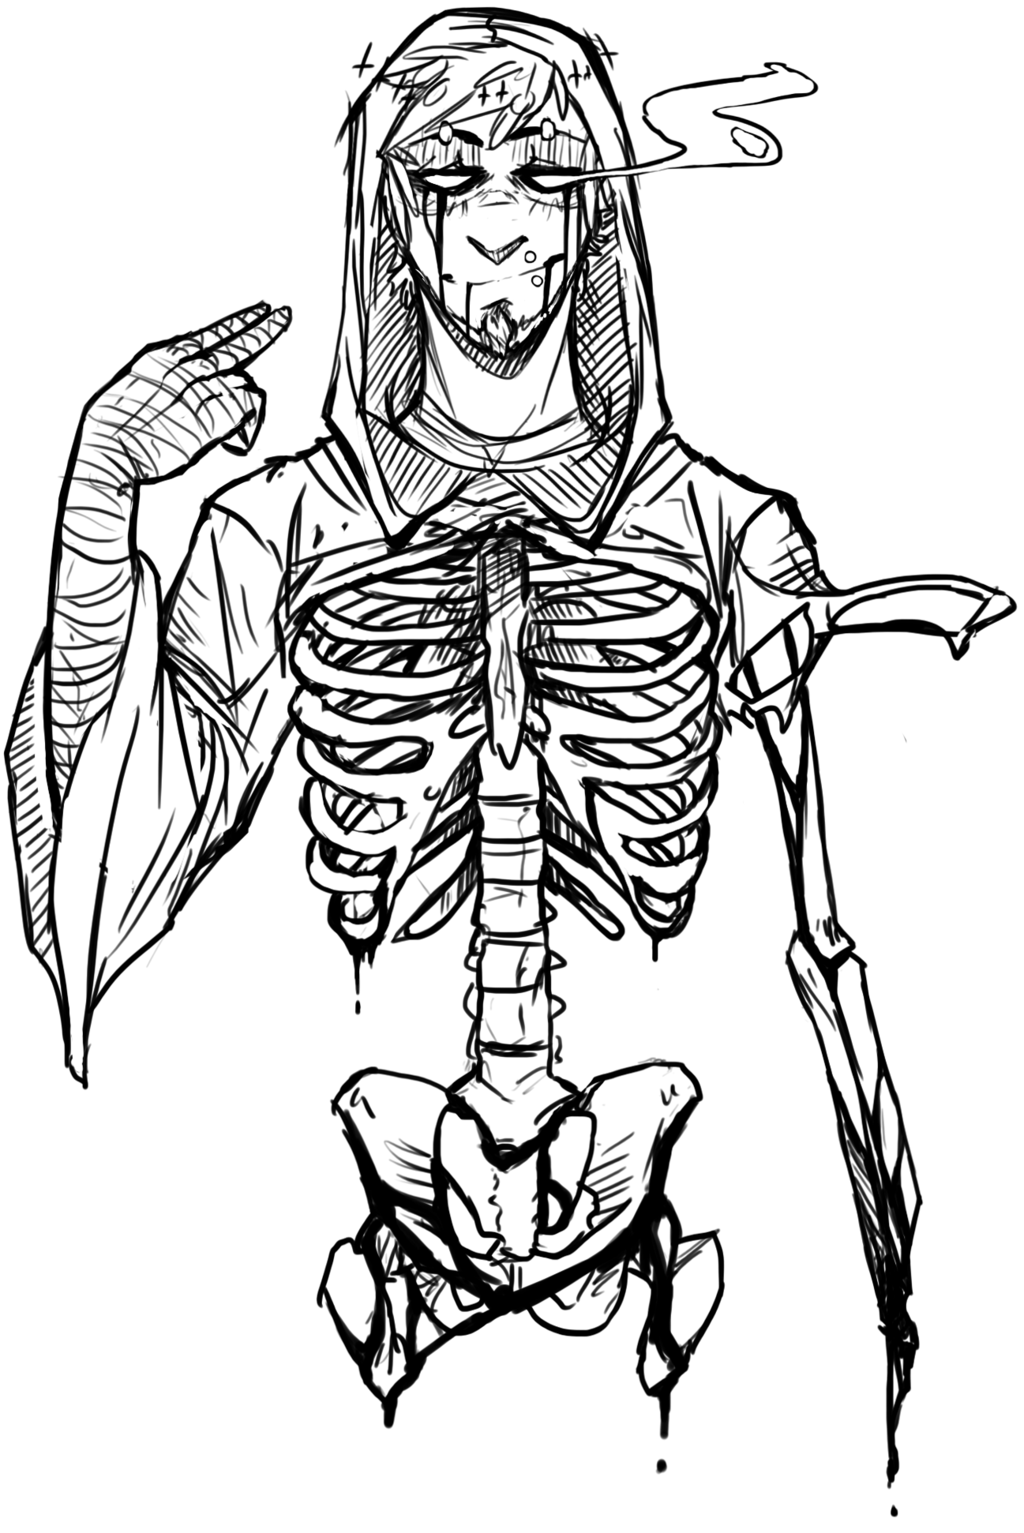 Skeletons drawing sketch. Skeleton by blasticheart deviantart